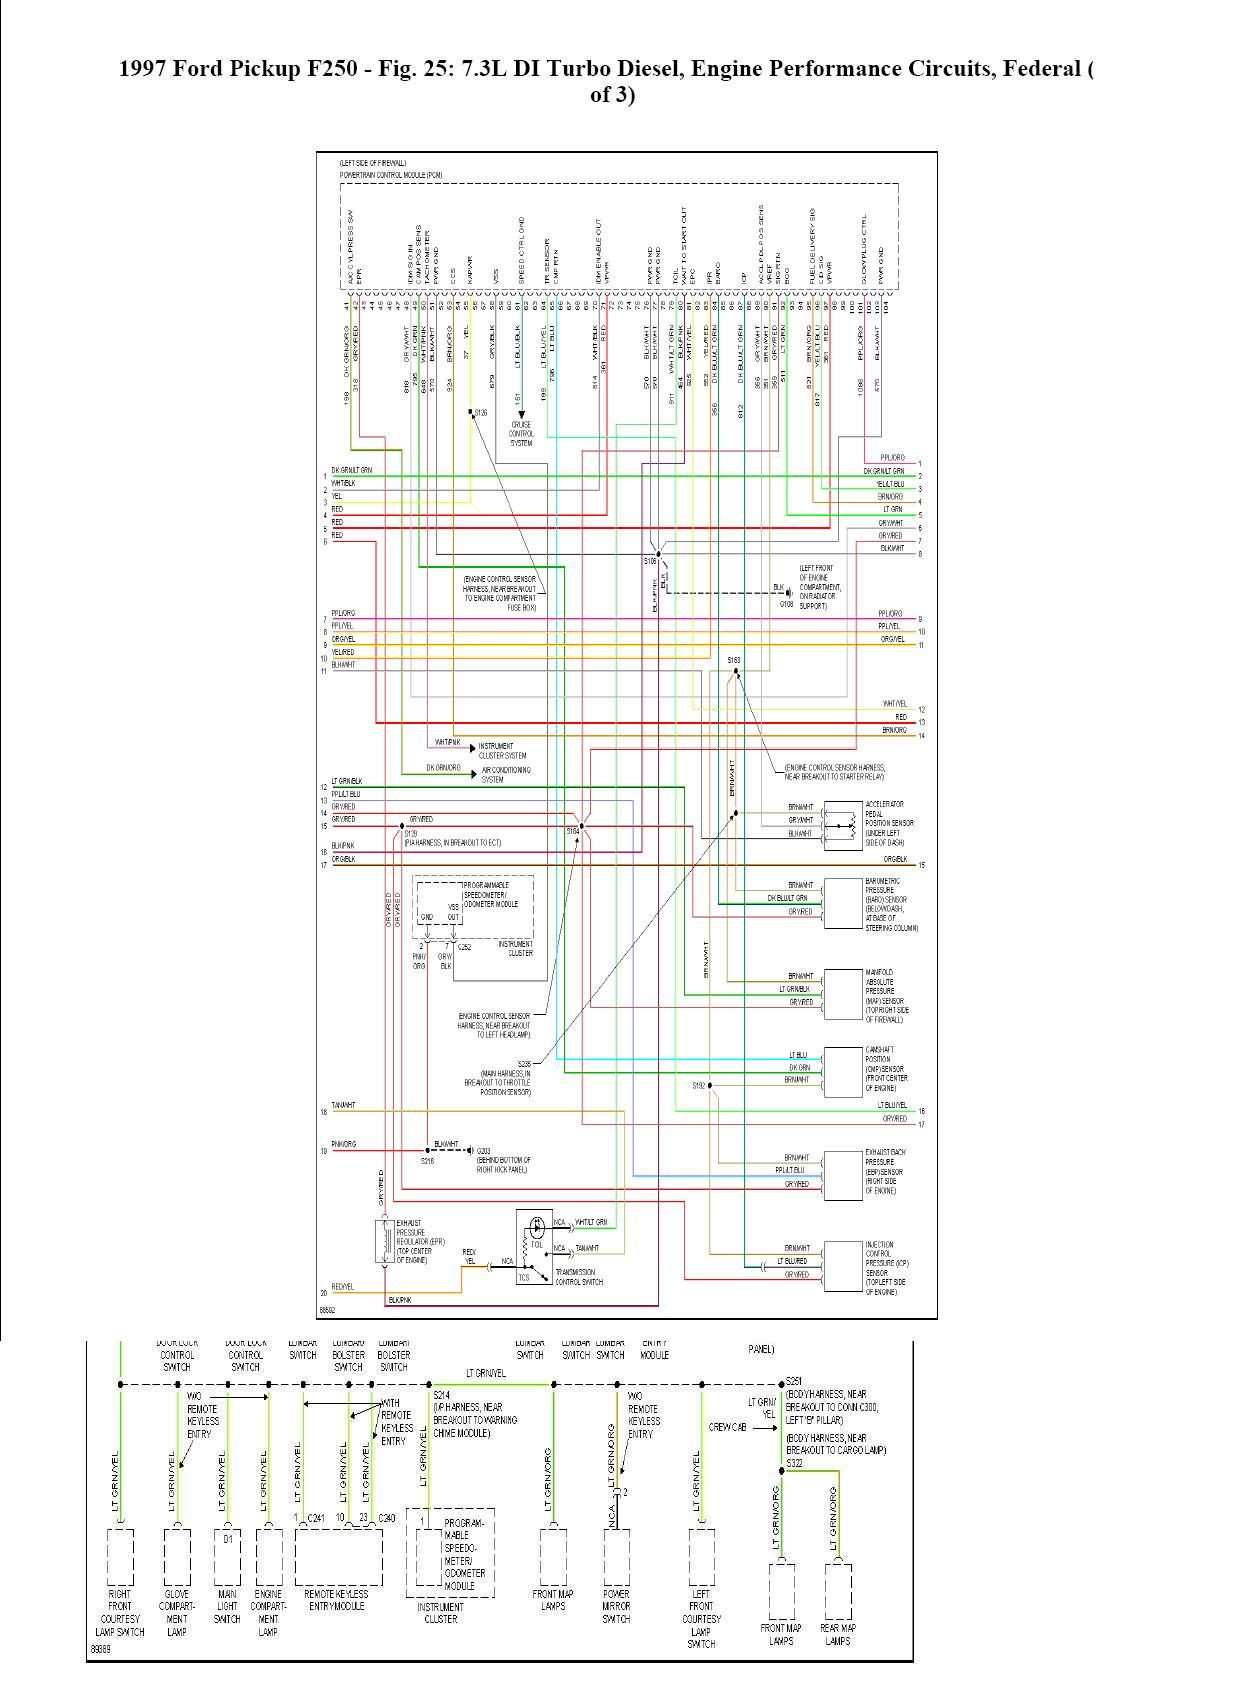 1988 ford f 350 diesel wiring diagram - wiring diagram structure  mark-future - mark-future.vinopoggioamorelli.it  poggio amorelli